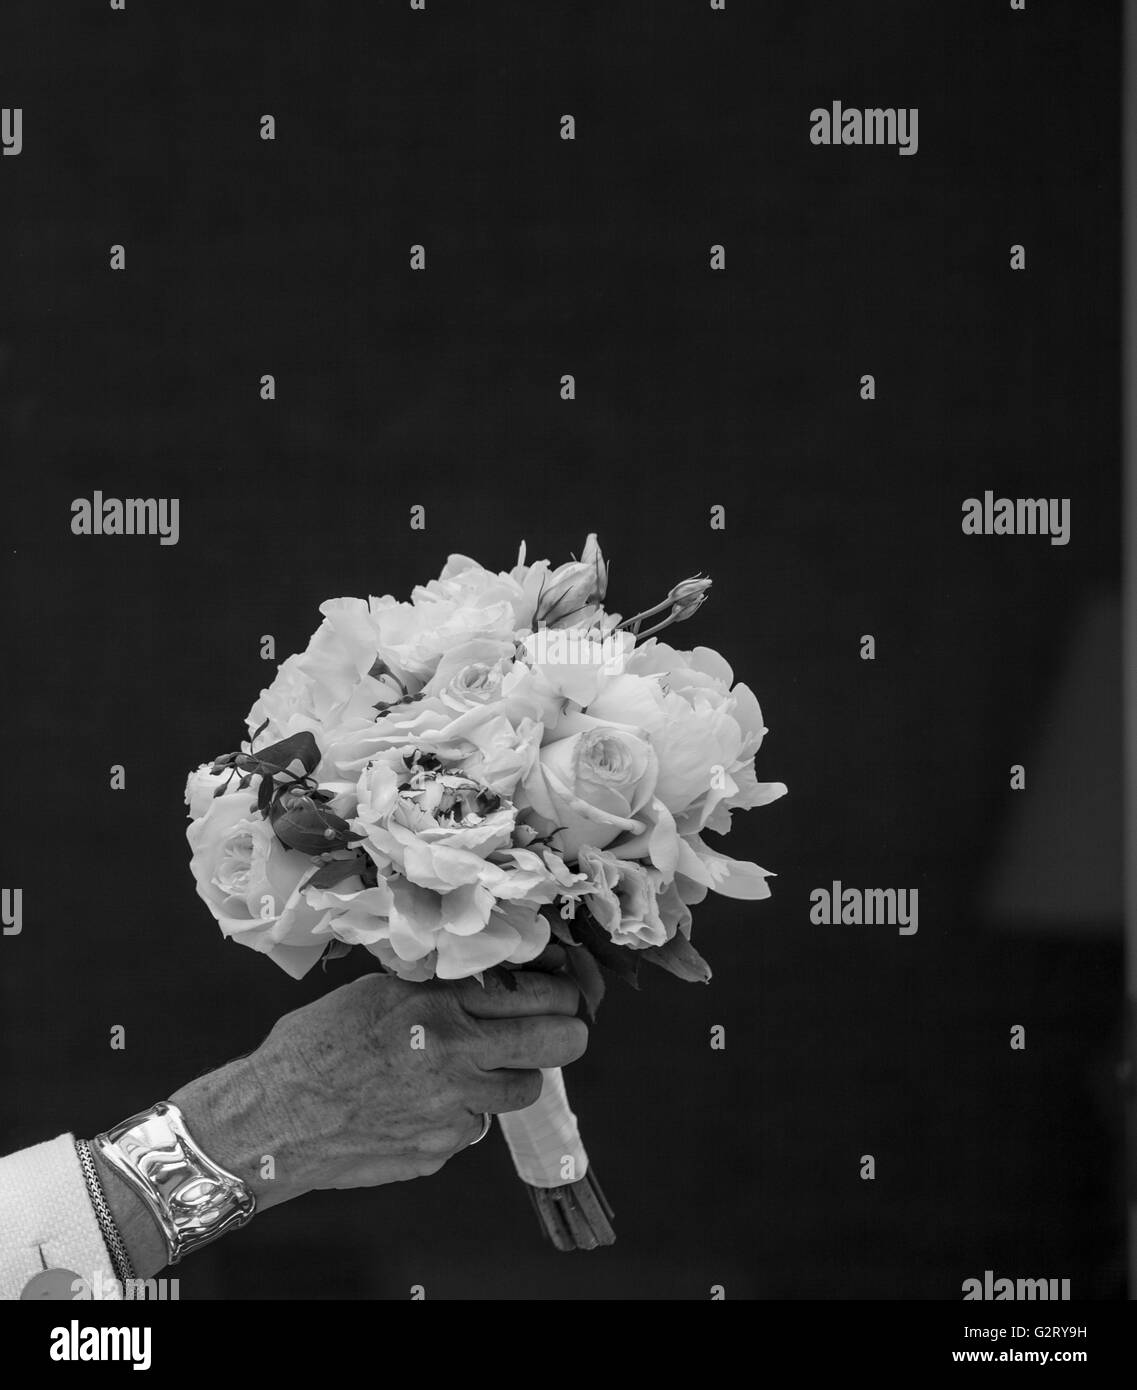 bouquet of fresh cut flowers in black and white held in a woman's hand with a black background Stock Photo